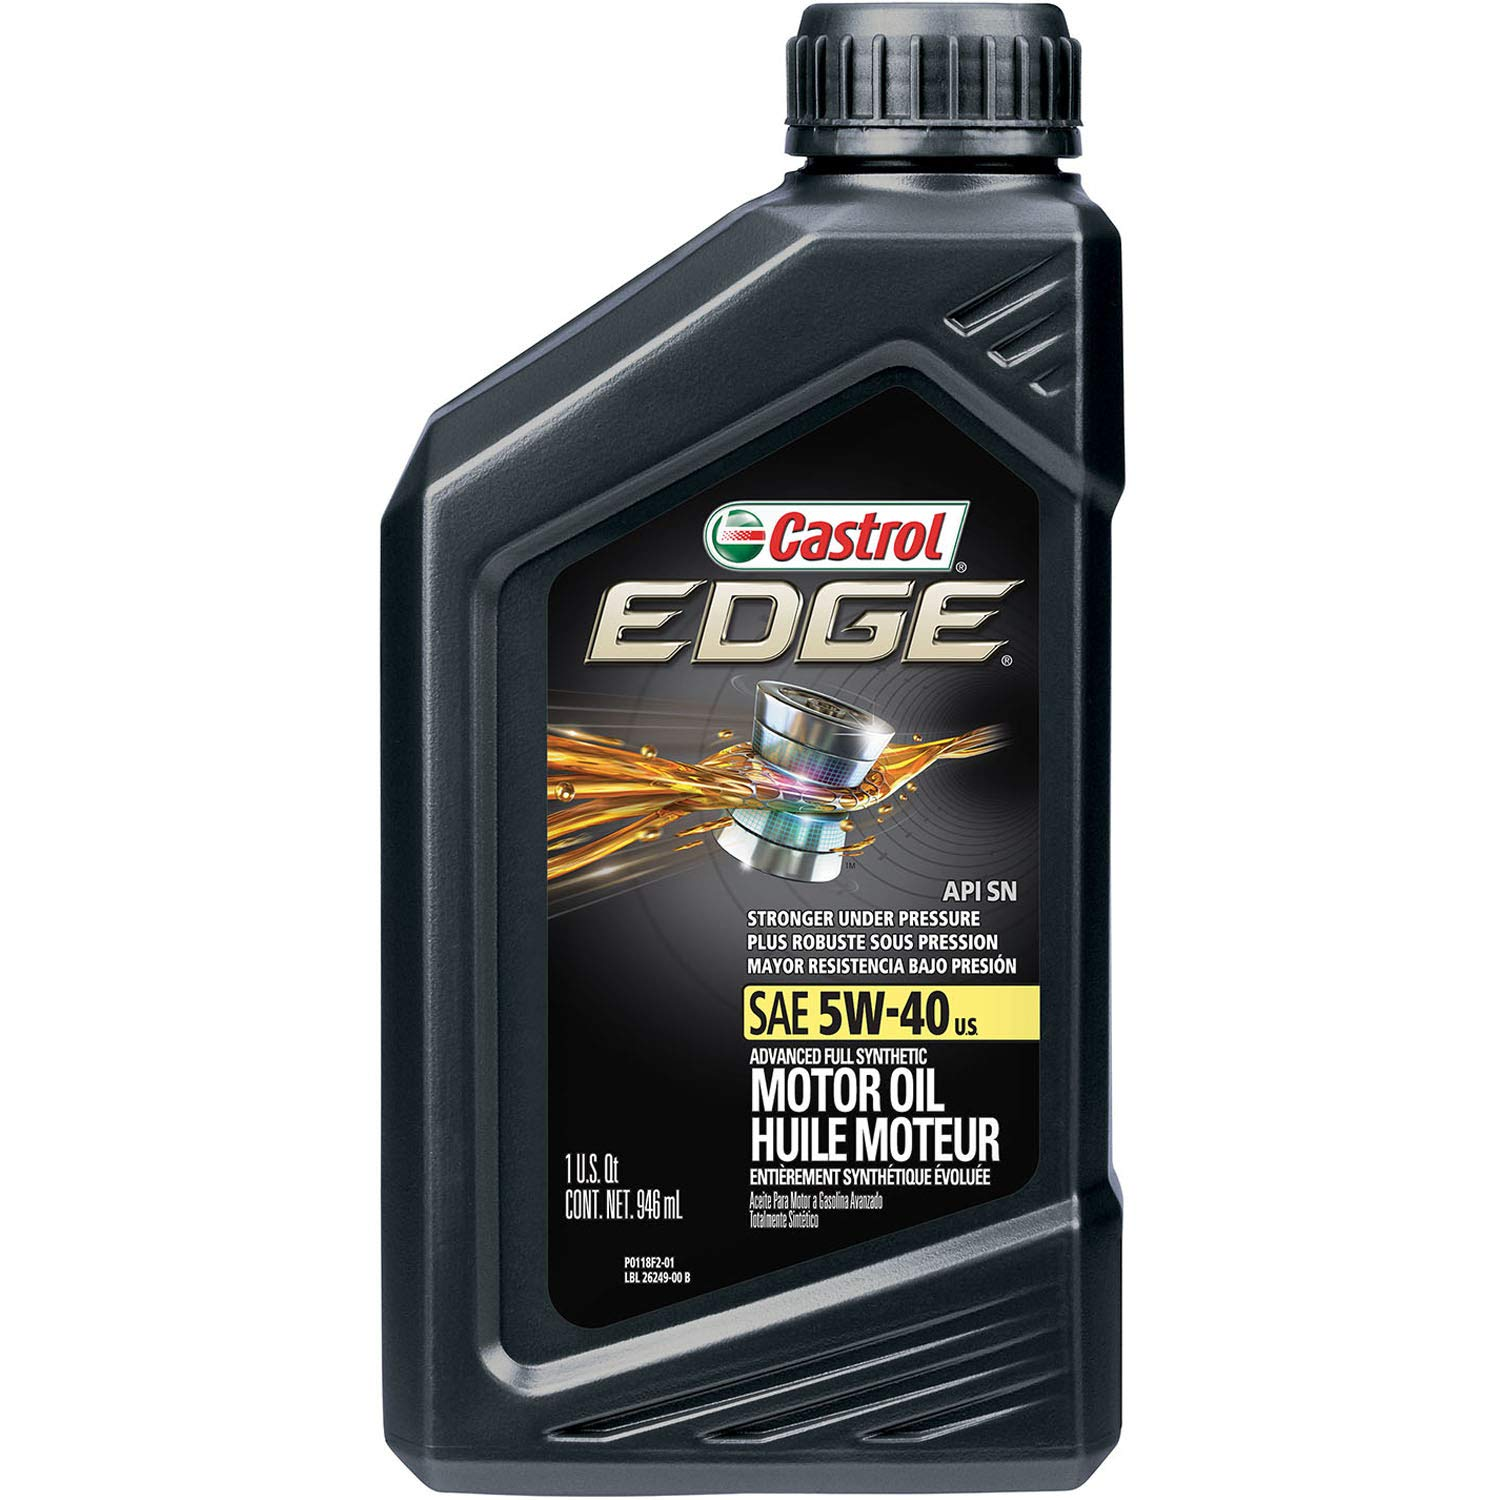 Nye Amazon.com: Castrol 06249 EDGE 5W-40 Advanced Full Synthetic Motor XL-36